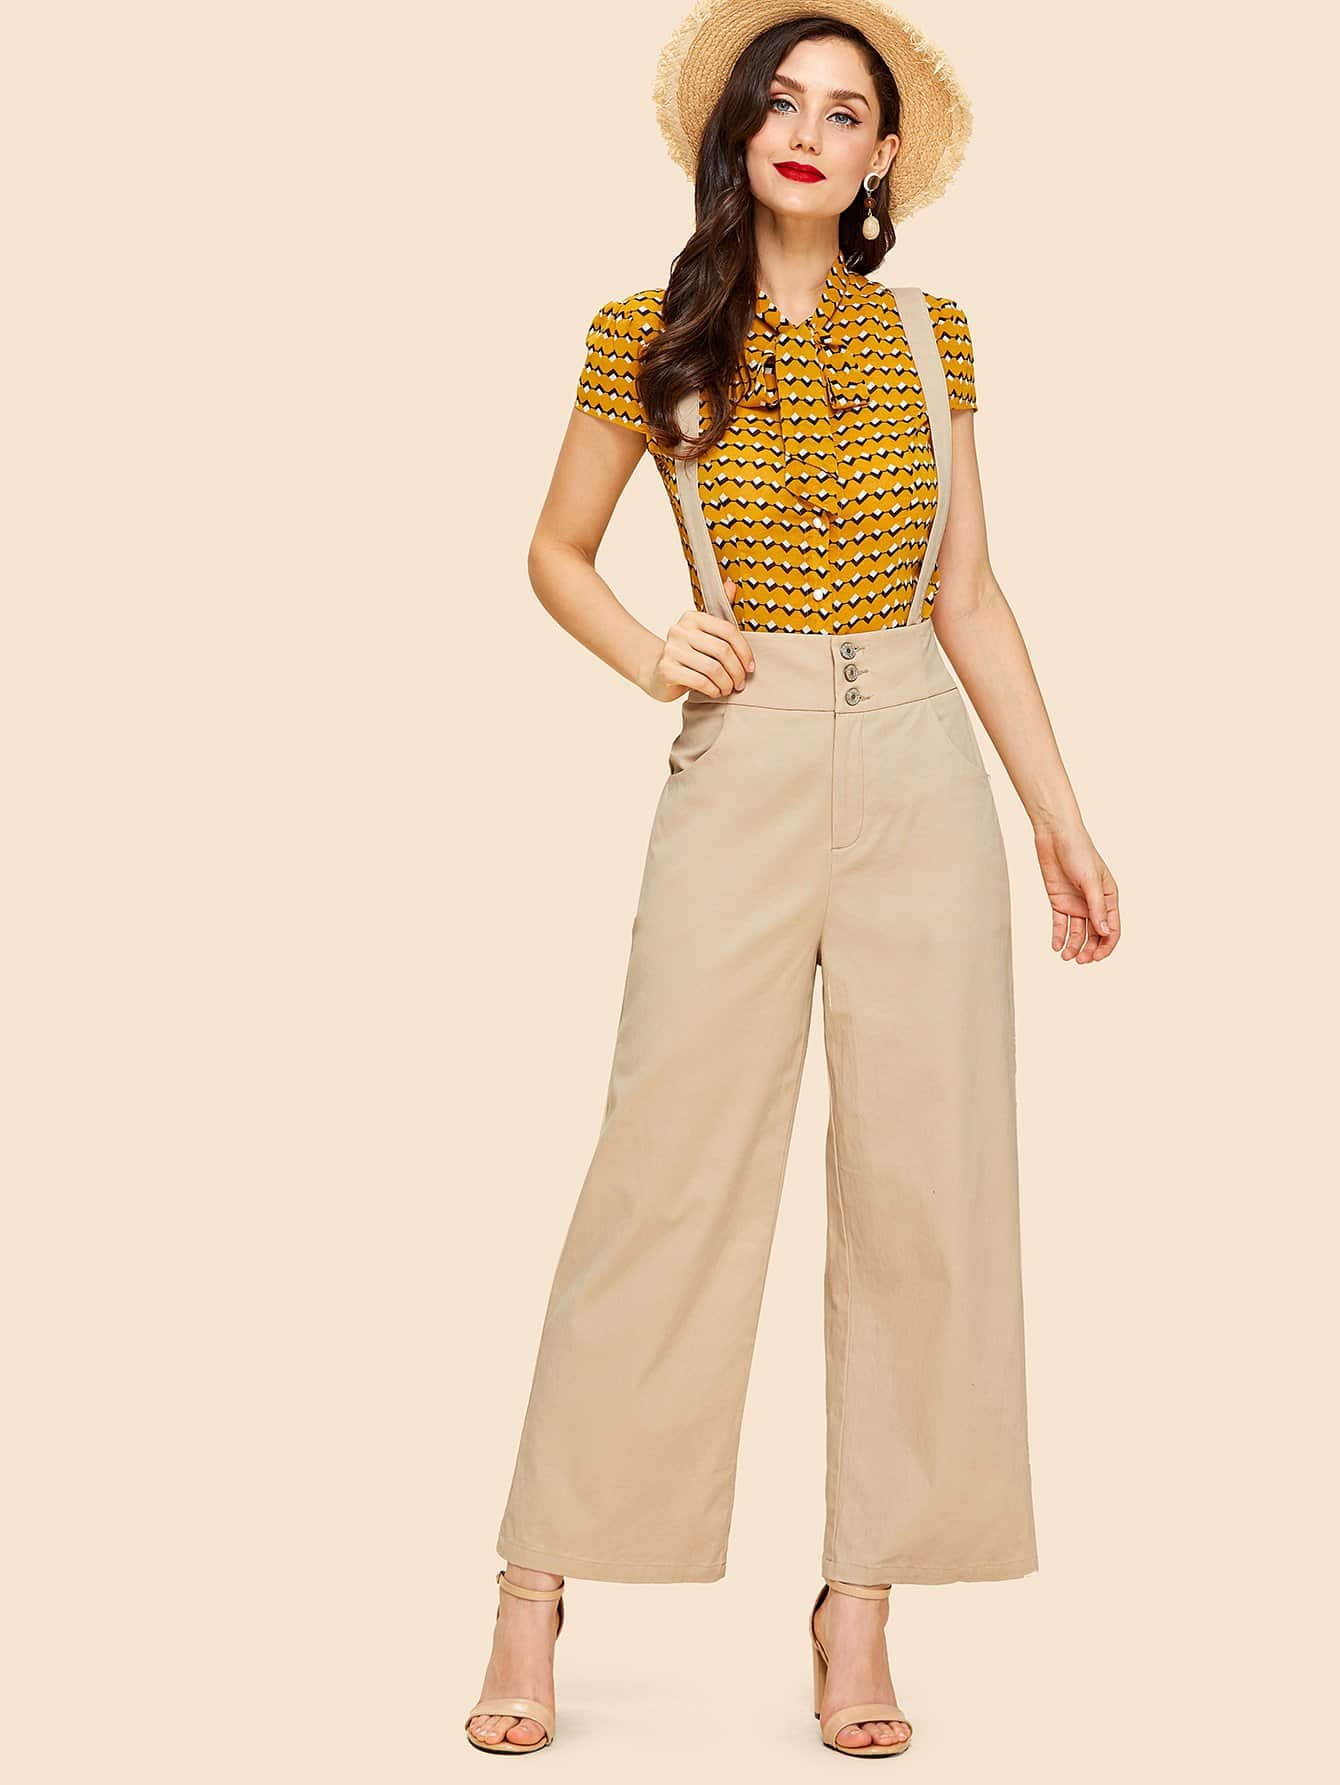 Buttoned Wide Waistband Palazzo Pants with Strap buttoned wide waistband palazzo pants with strap